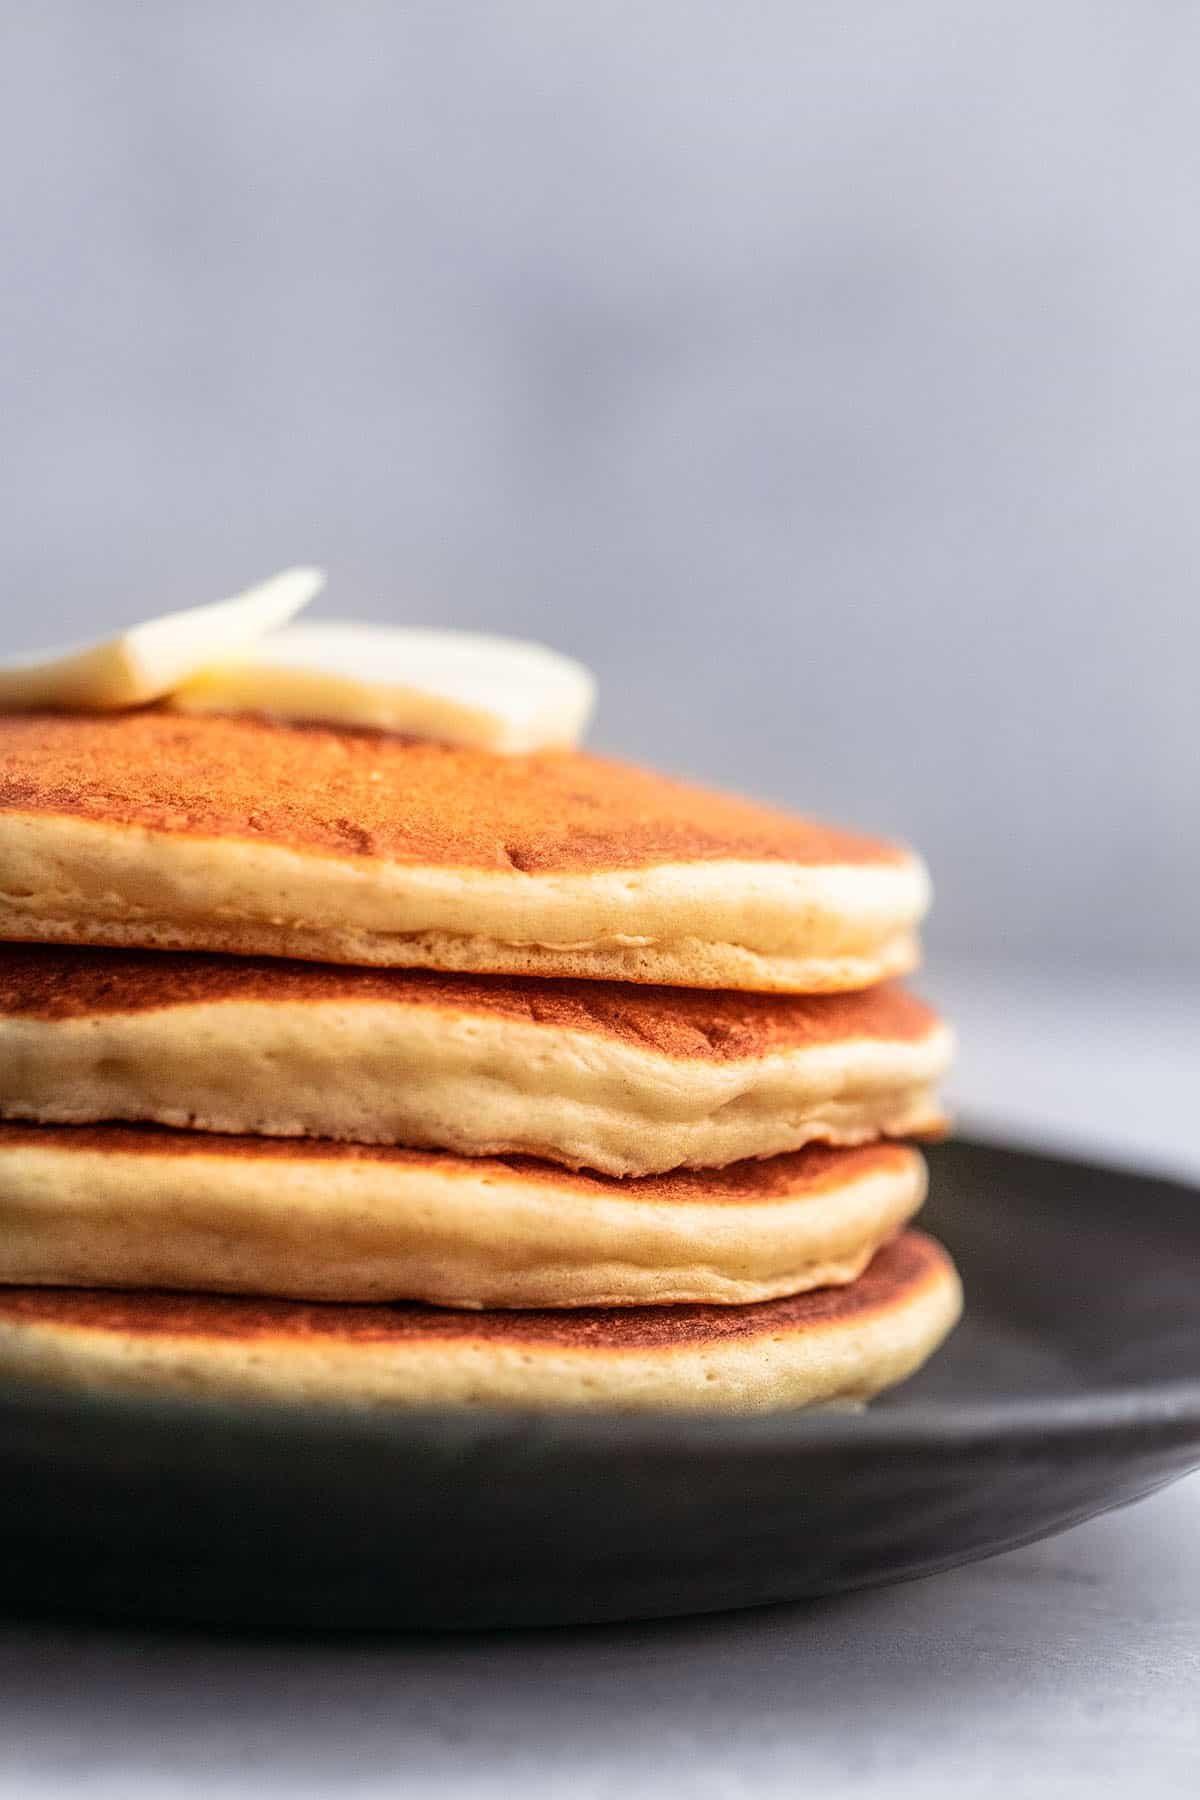 butter on top of a stack of pancakes on a plate